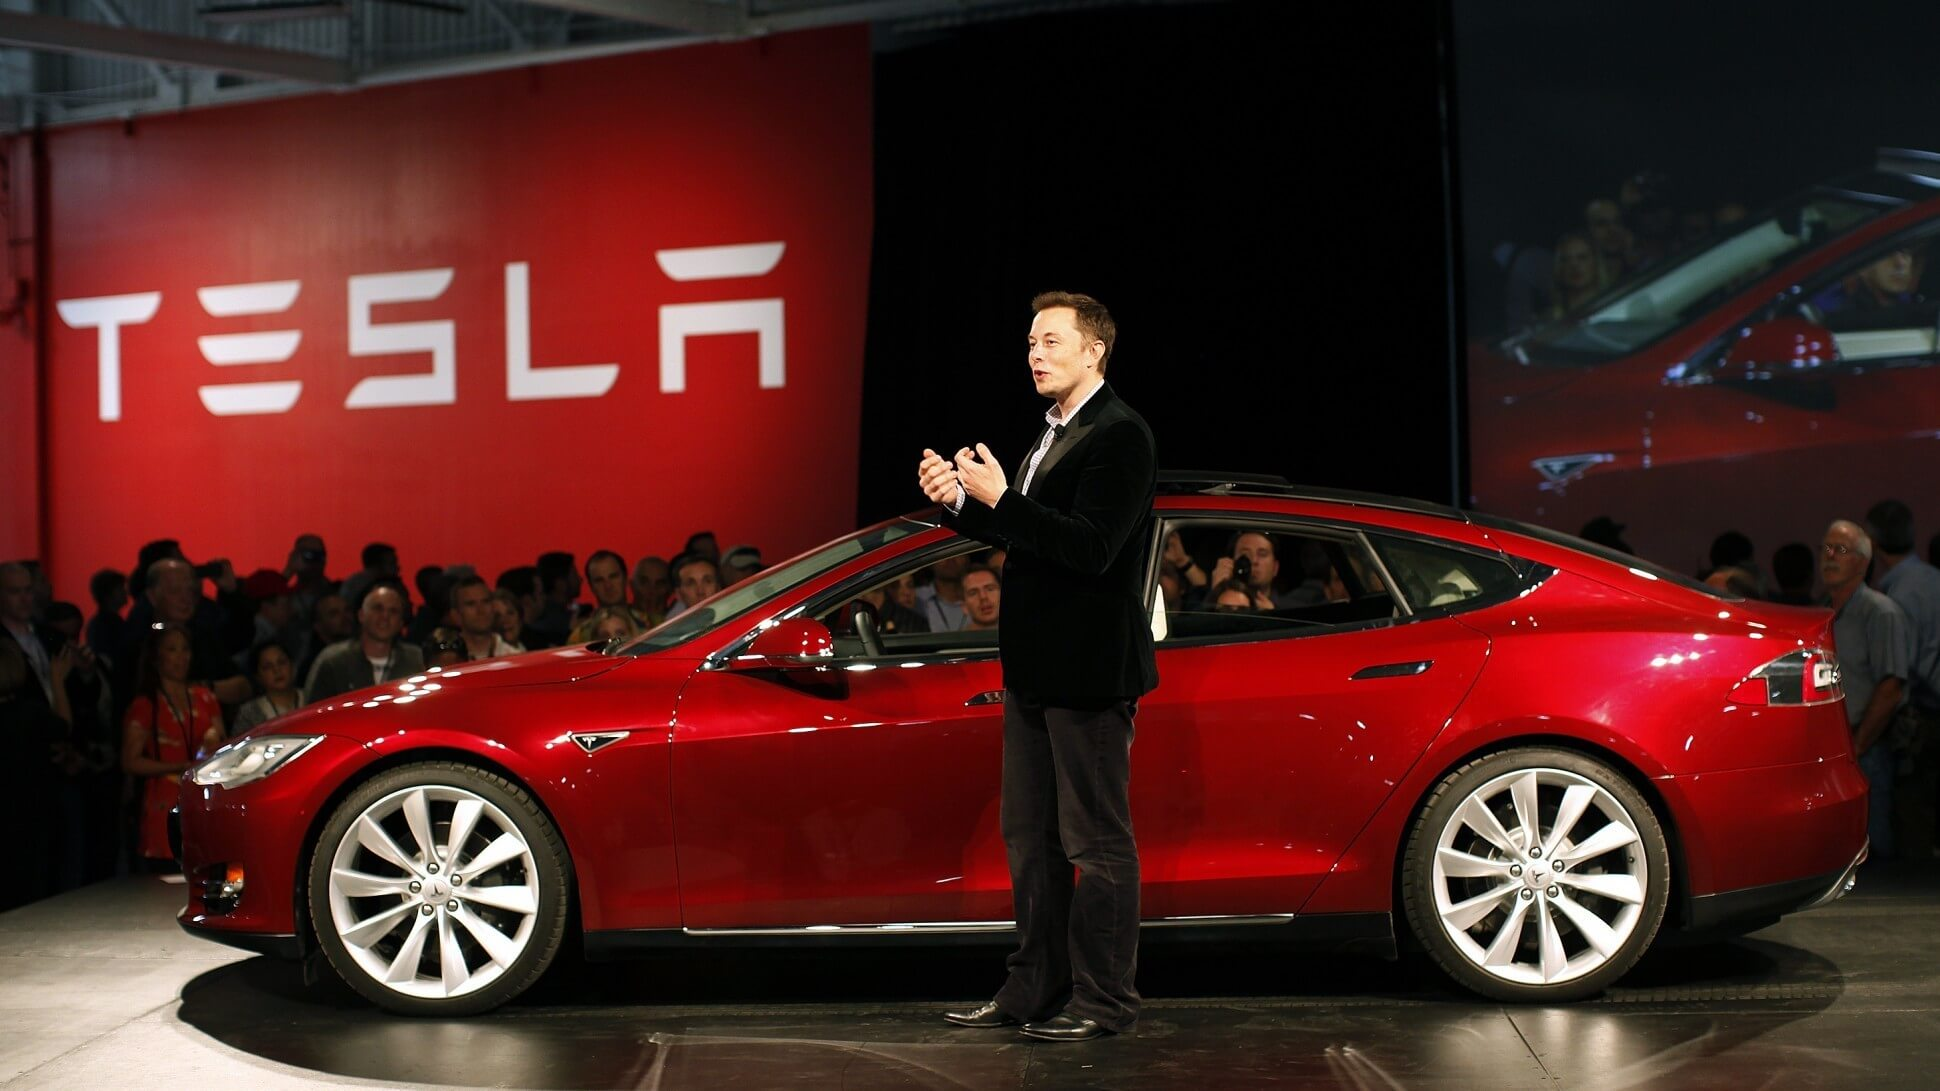 Tesla shareholders considering voting out chairman Elon Musk